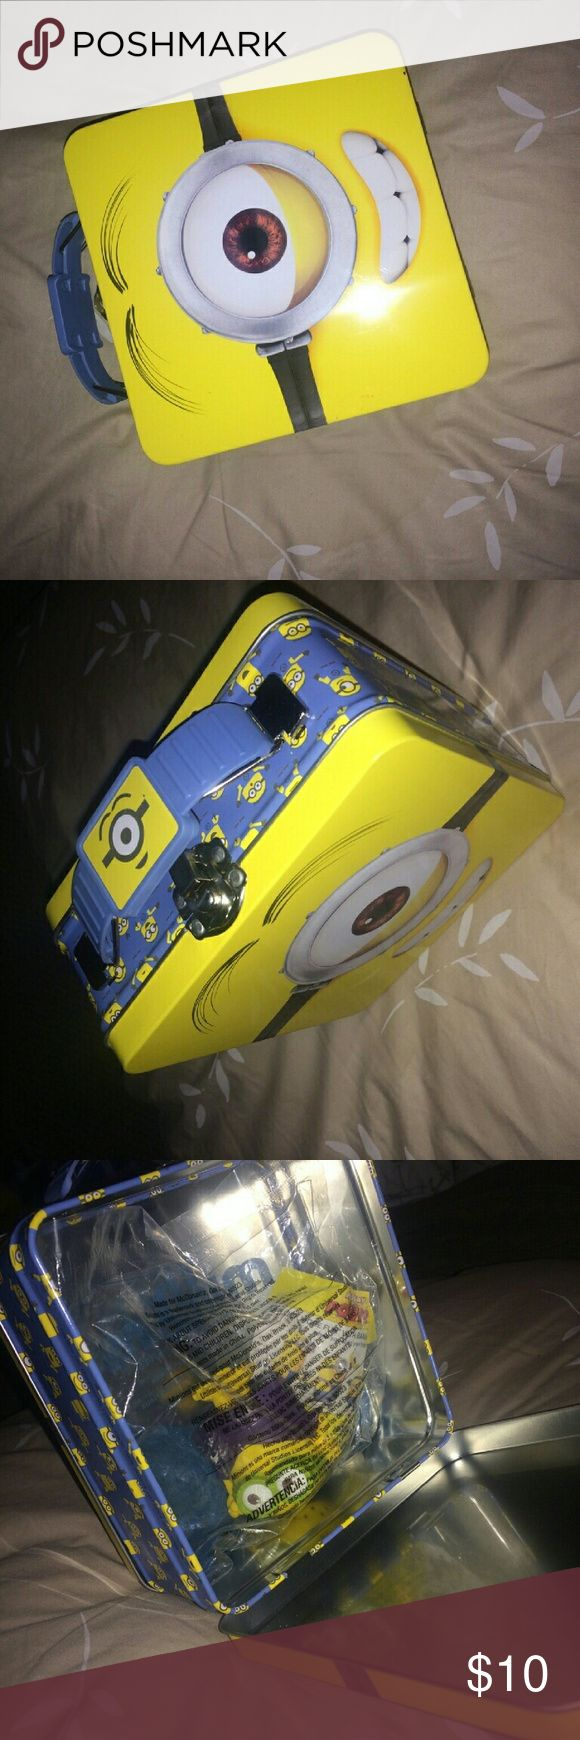 Minion Lunch Box Never used- Lunch Box/ New Other